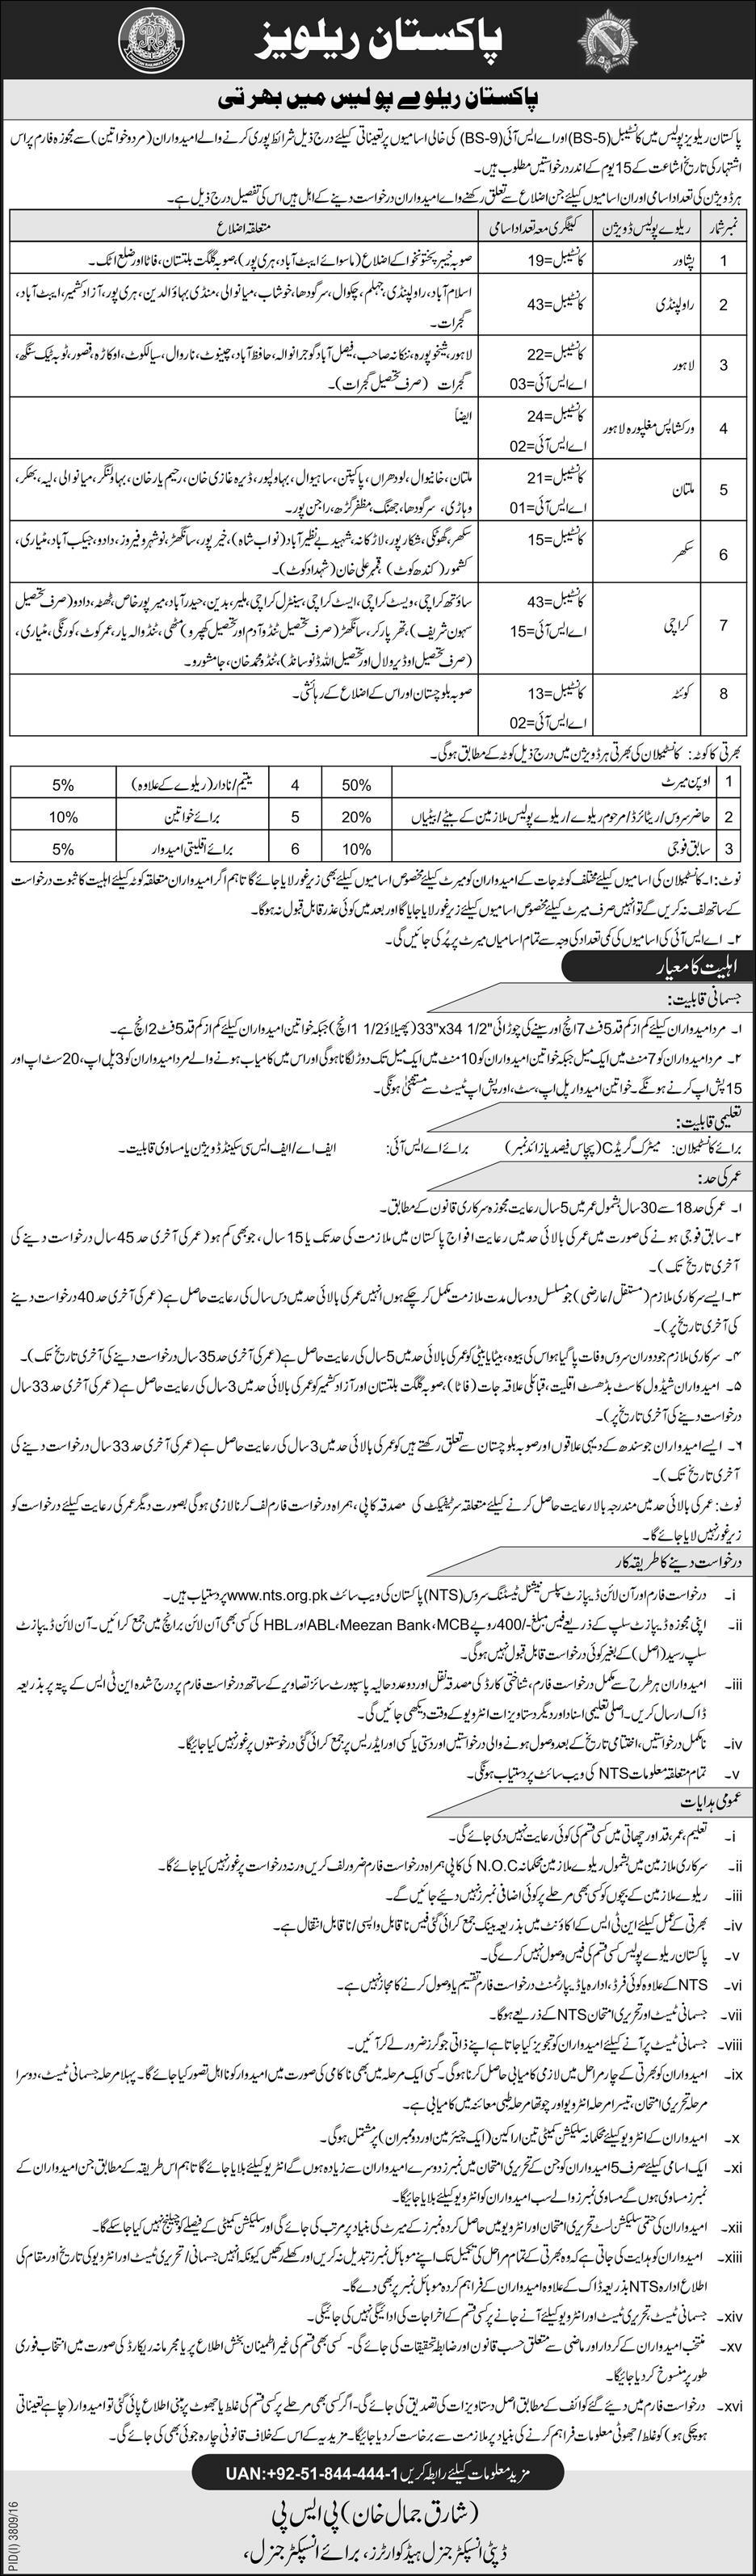 Pakistan Railway Police NTS Jobs Eligibility Criteria Application Form Download Last Date